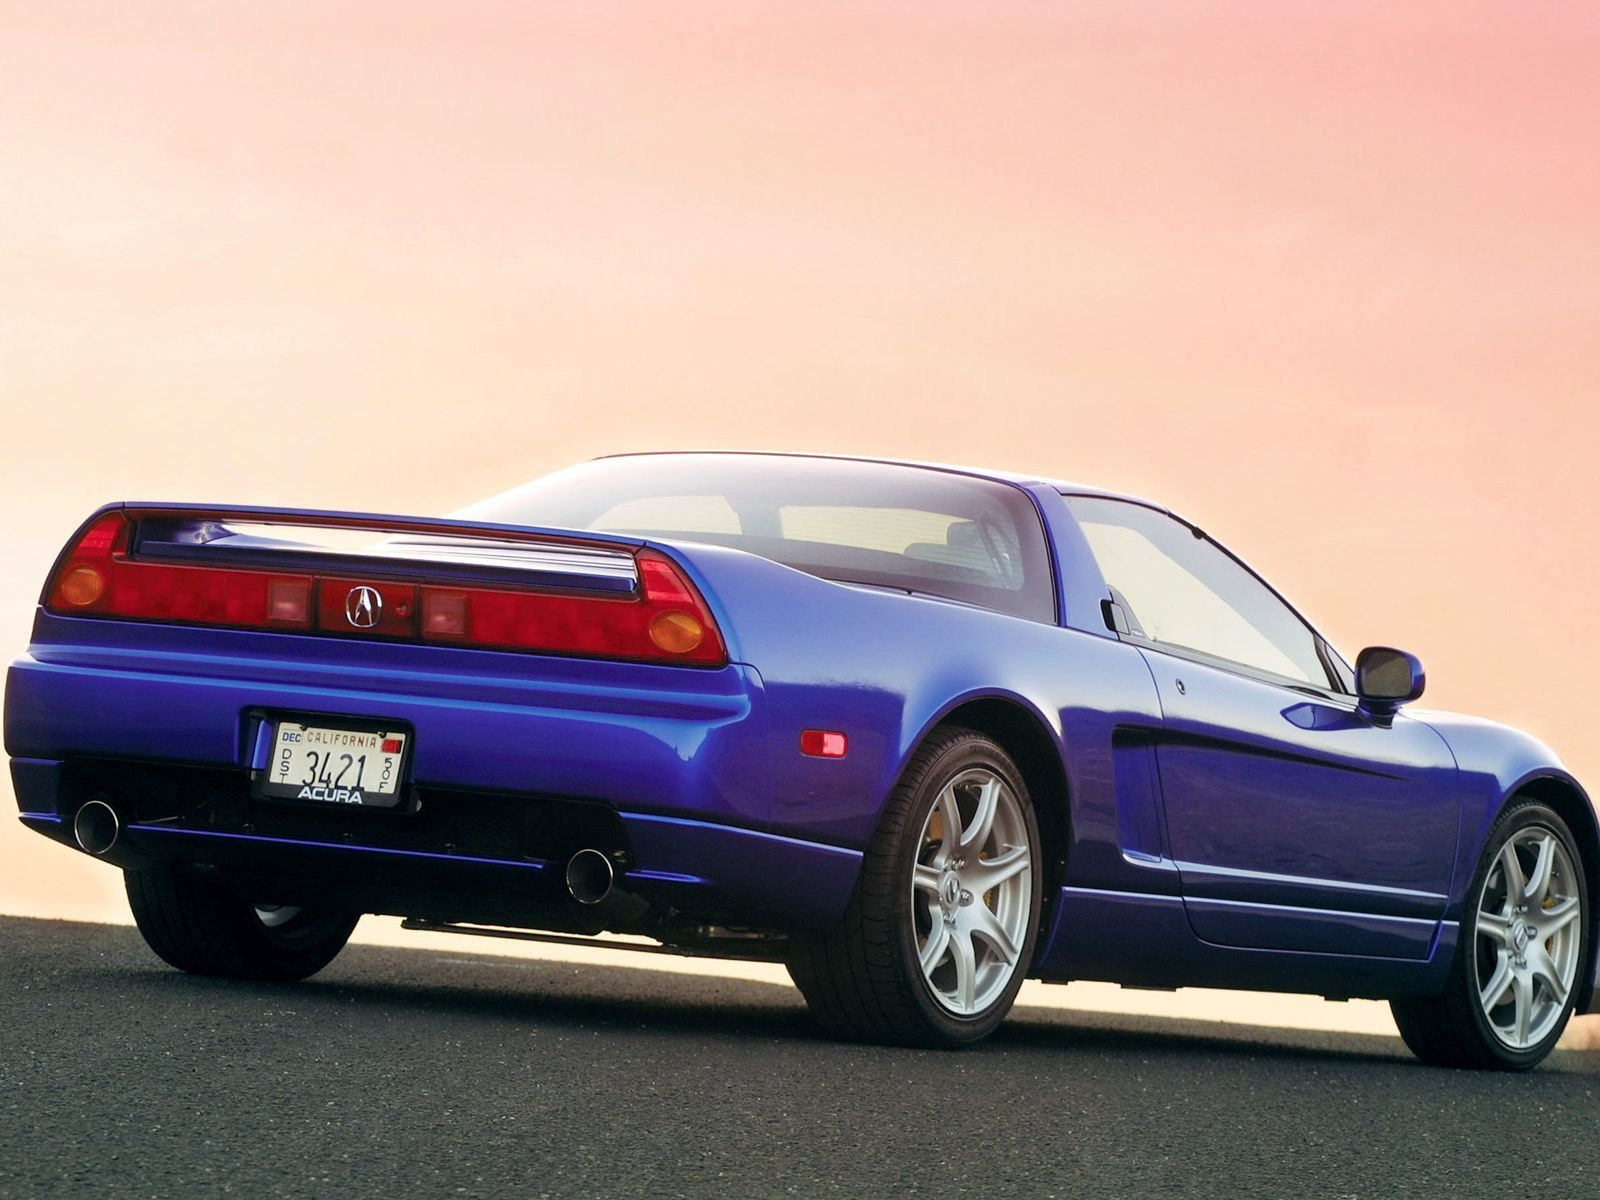 1990 2005 honda nsx picture 33114 car review top speed. Black Bedroom Furniture Sets. Home Design Ideas